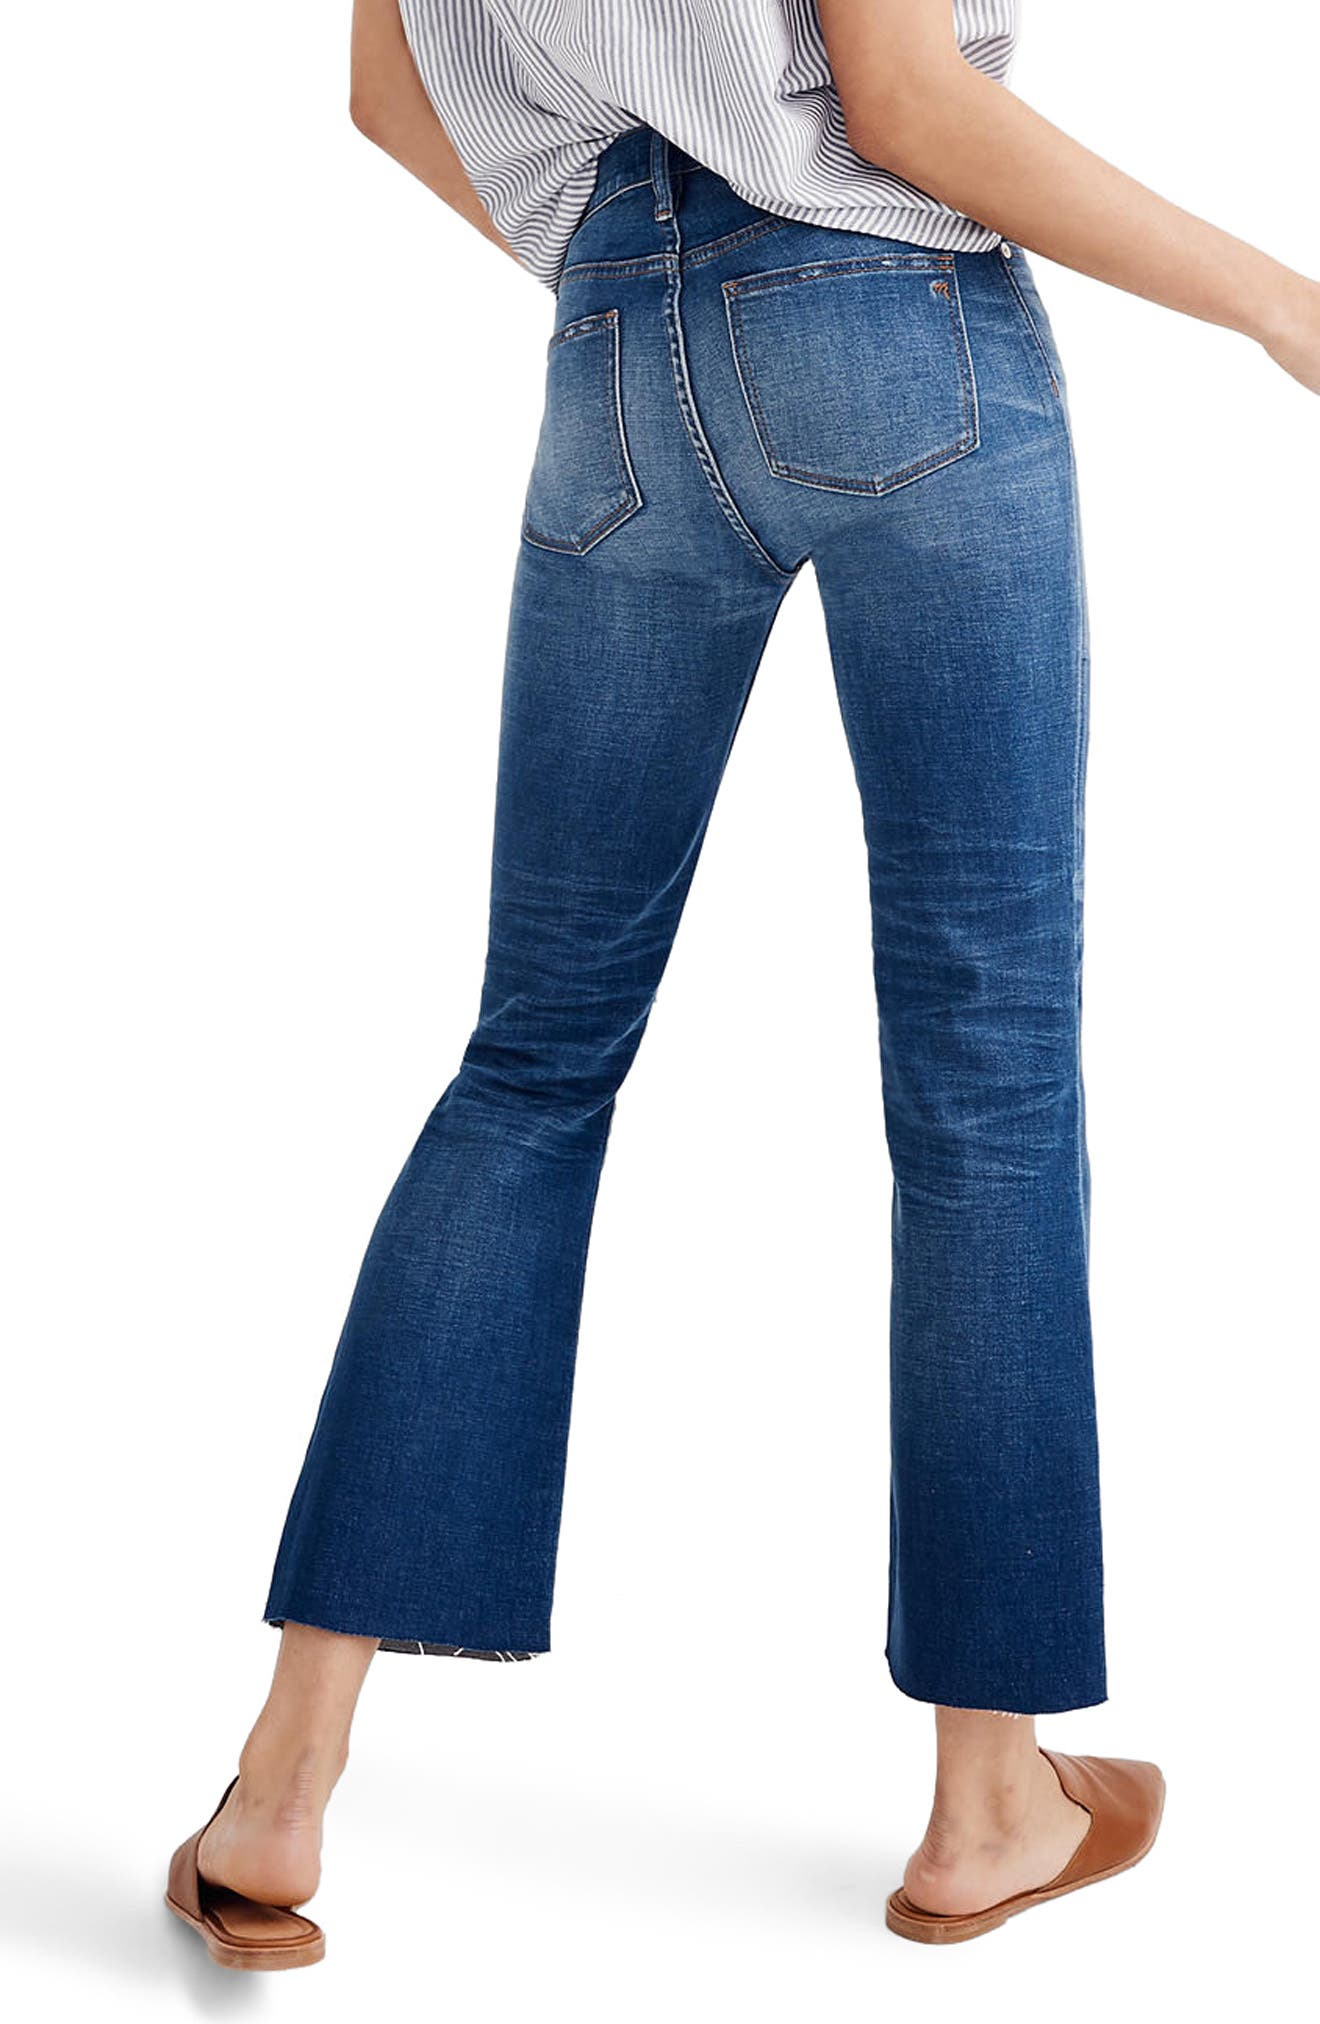 MADEWELL, Cali Ripped Demi Bootleg Crop Jeans, Alternate thumbnail 2, color, 400